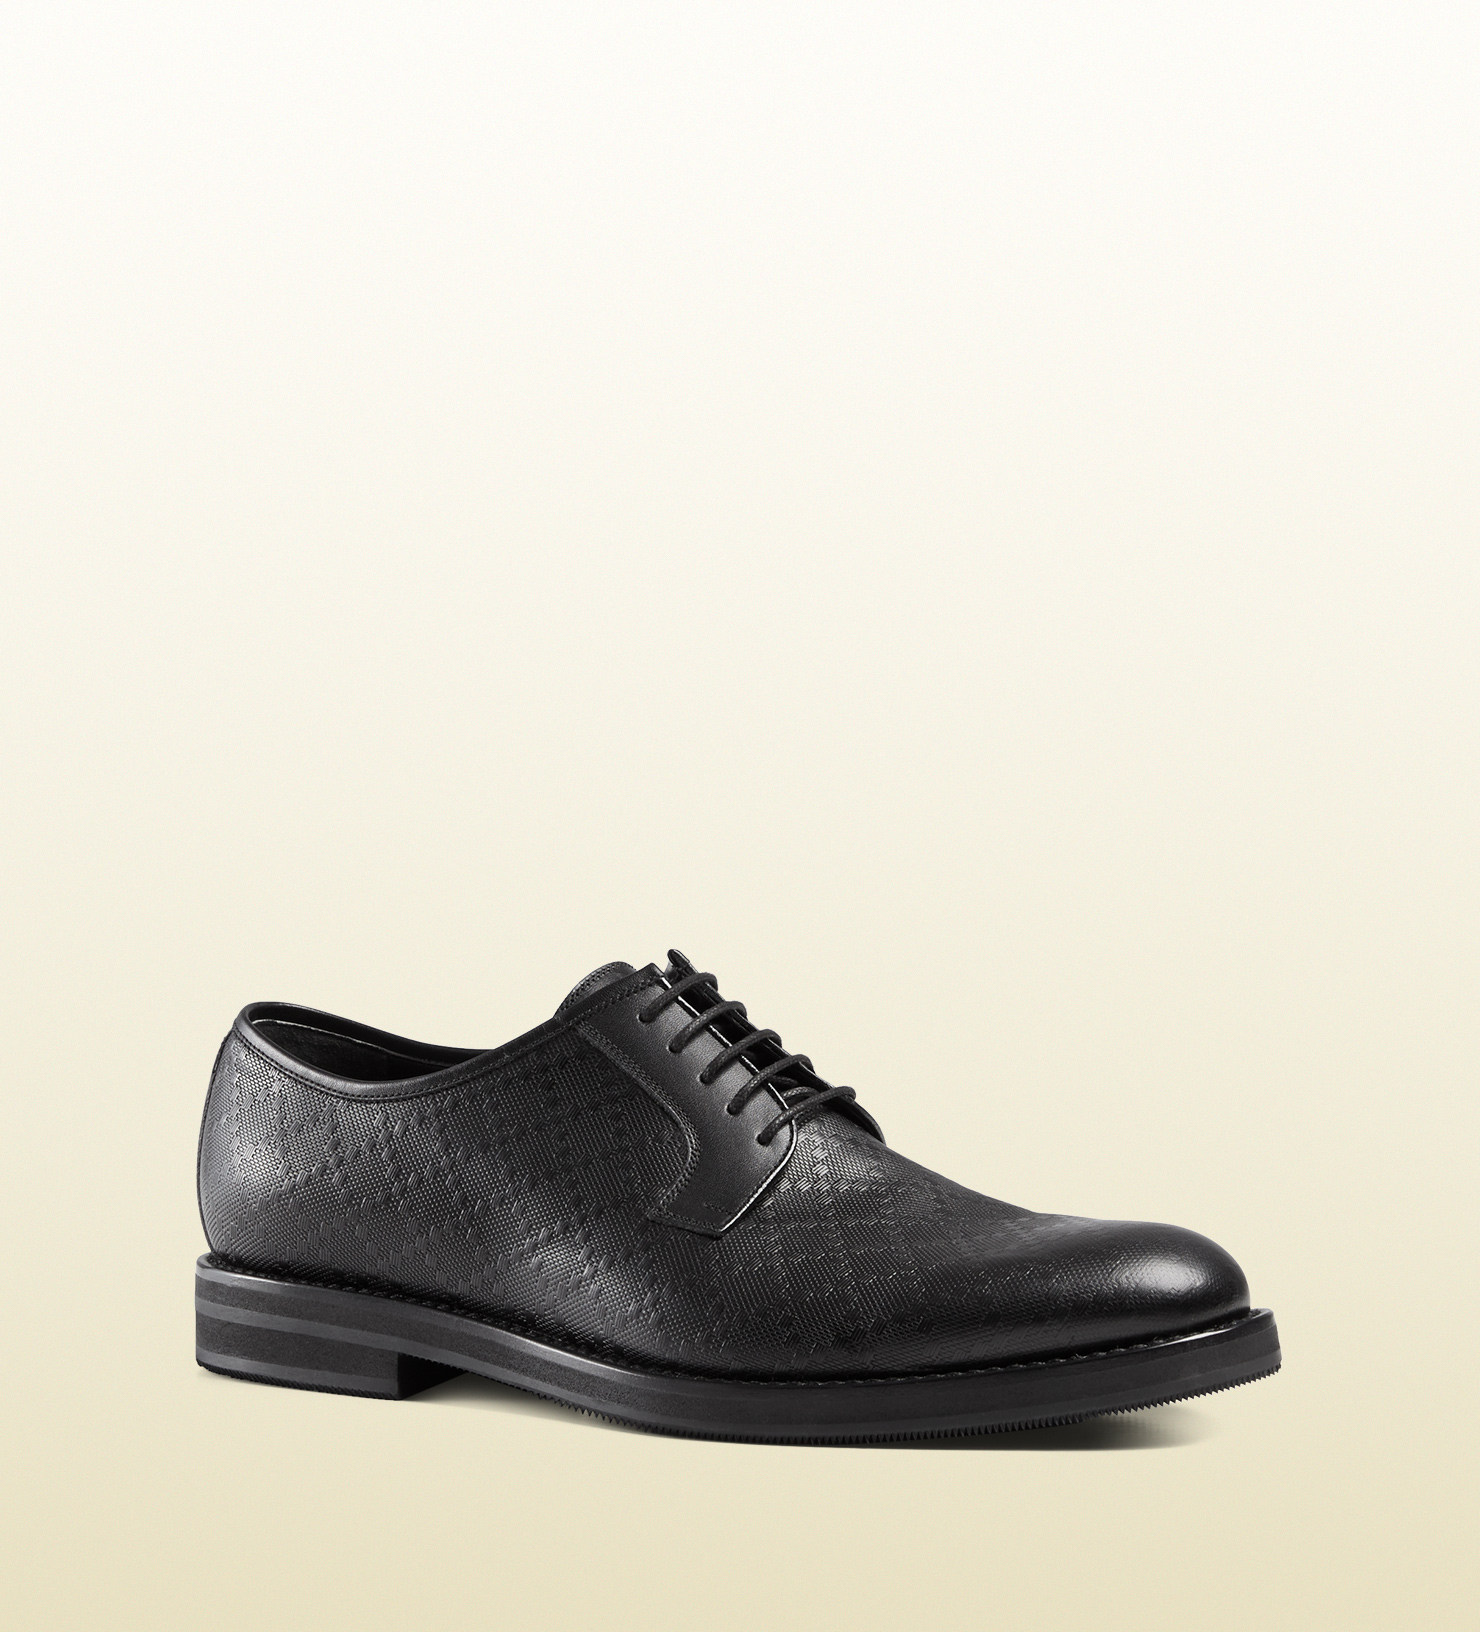 gucci diamante leather lace up shoe in black for lyst